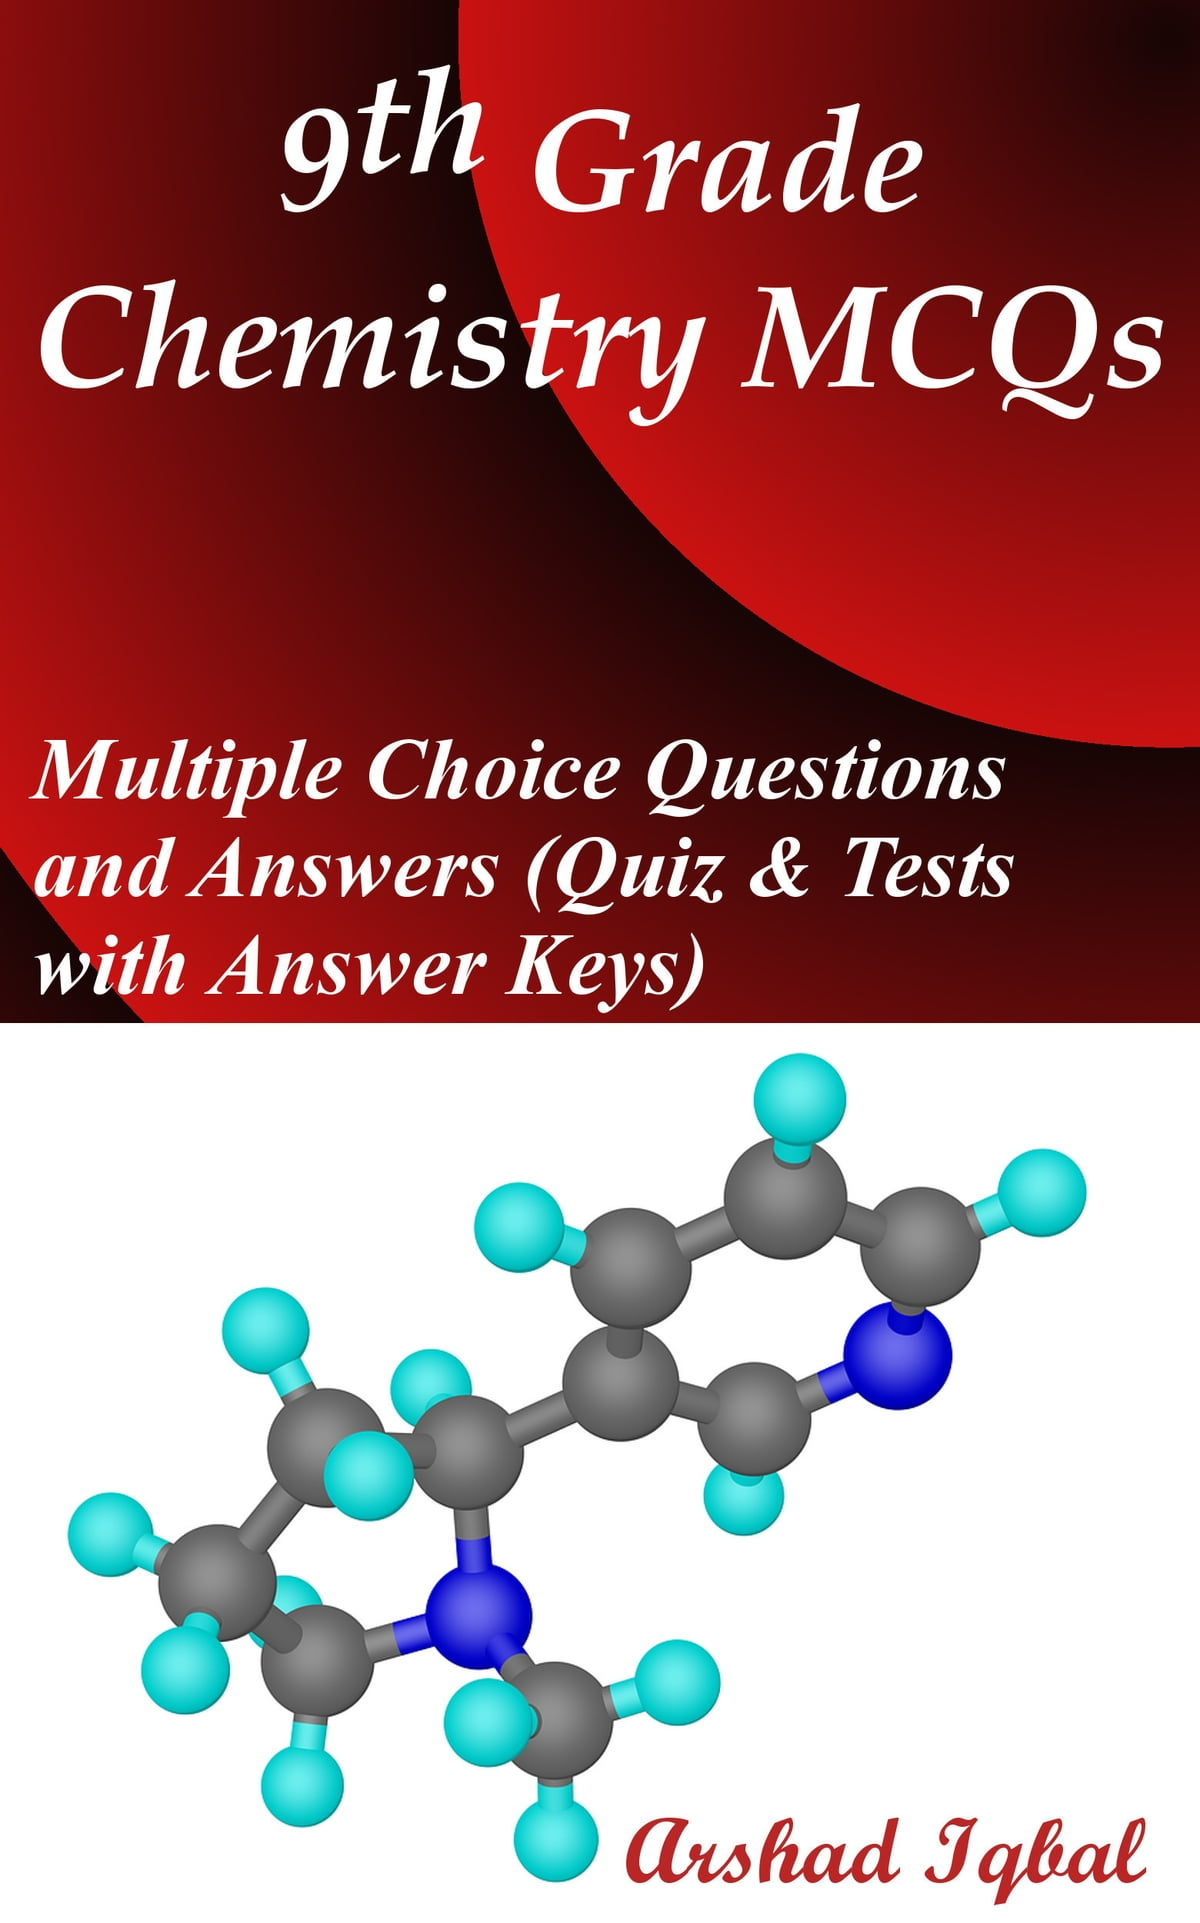 9th Grade Chemistry MCQs: Multiple Choice Questions and Answers (Quiz &  Tests with Answer Keys) ebook by Arshad Iqbal - Rakuten Kobo